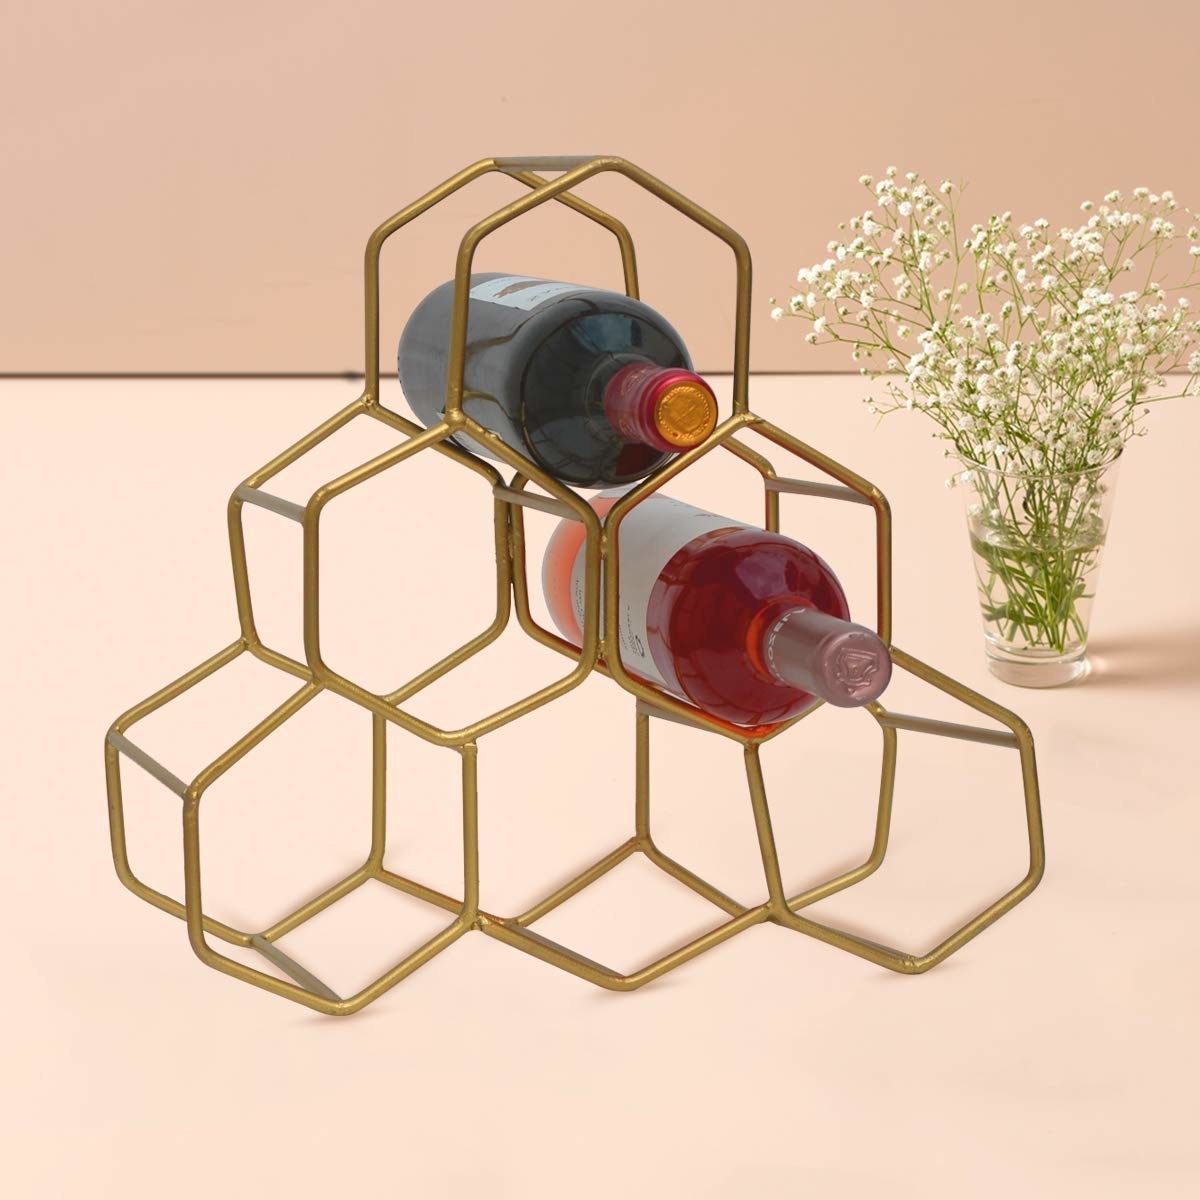 A honeycomb pyramid style golden wine rack with 6 slots pictured with wine bottles.